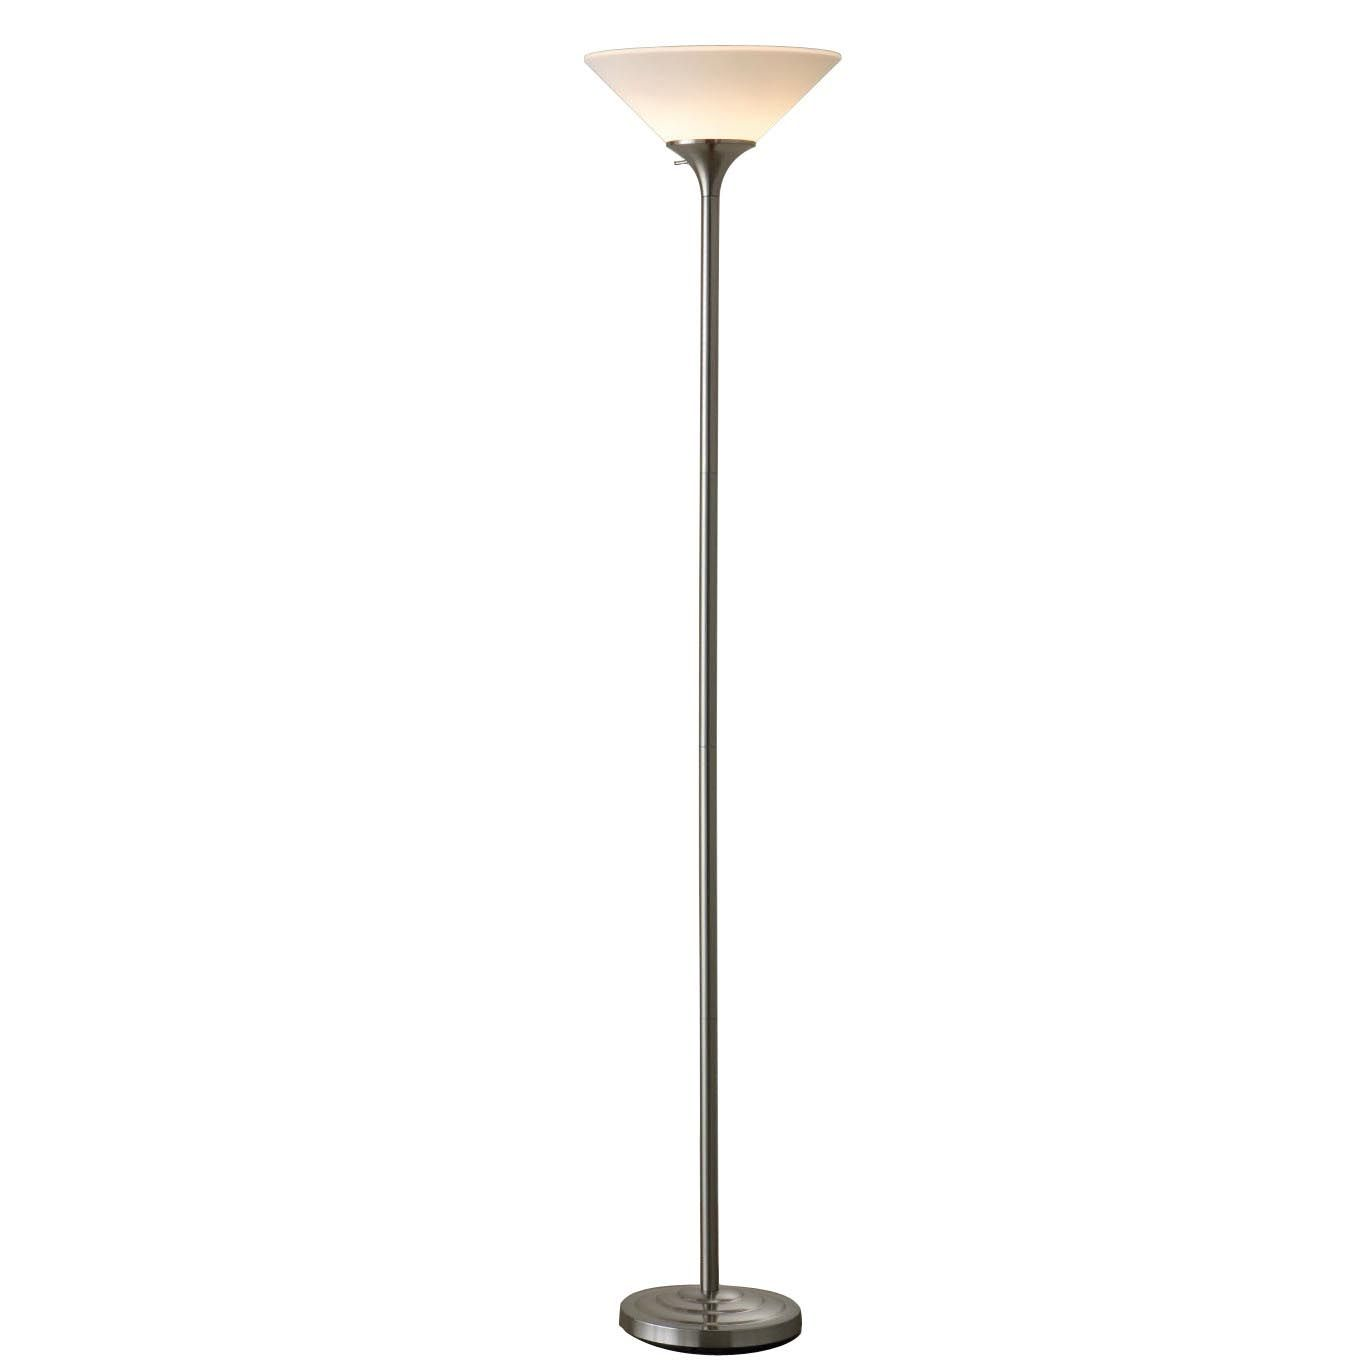 normande lighting rustic floor lamp